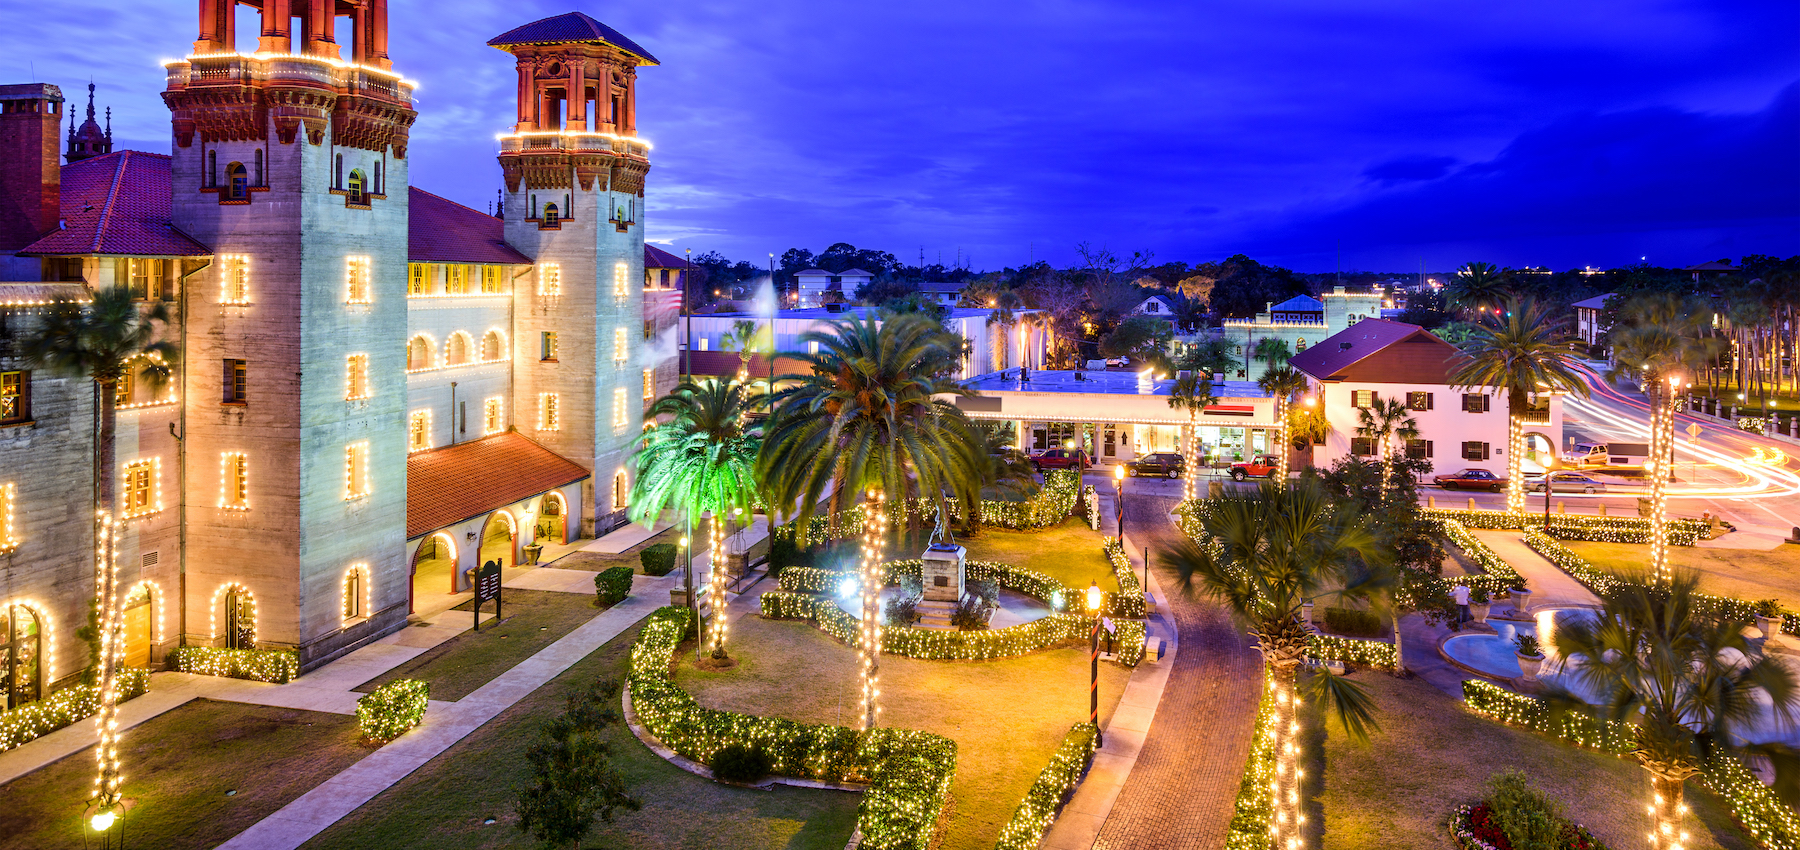 st augustine alcazar courtyard view with christmas lights for nights of lights display